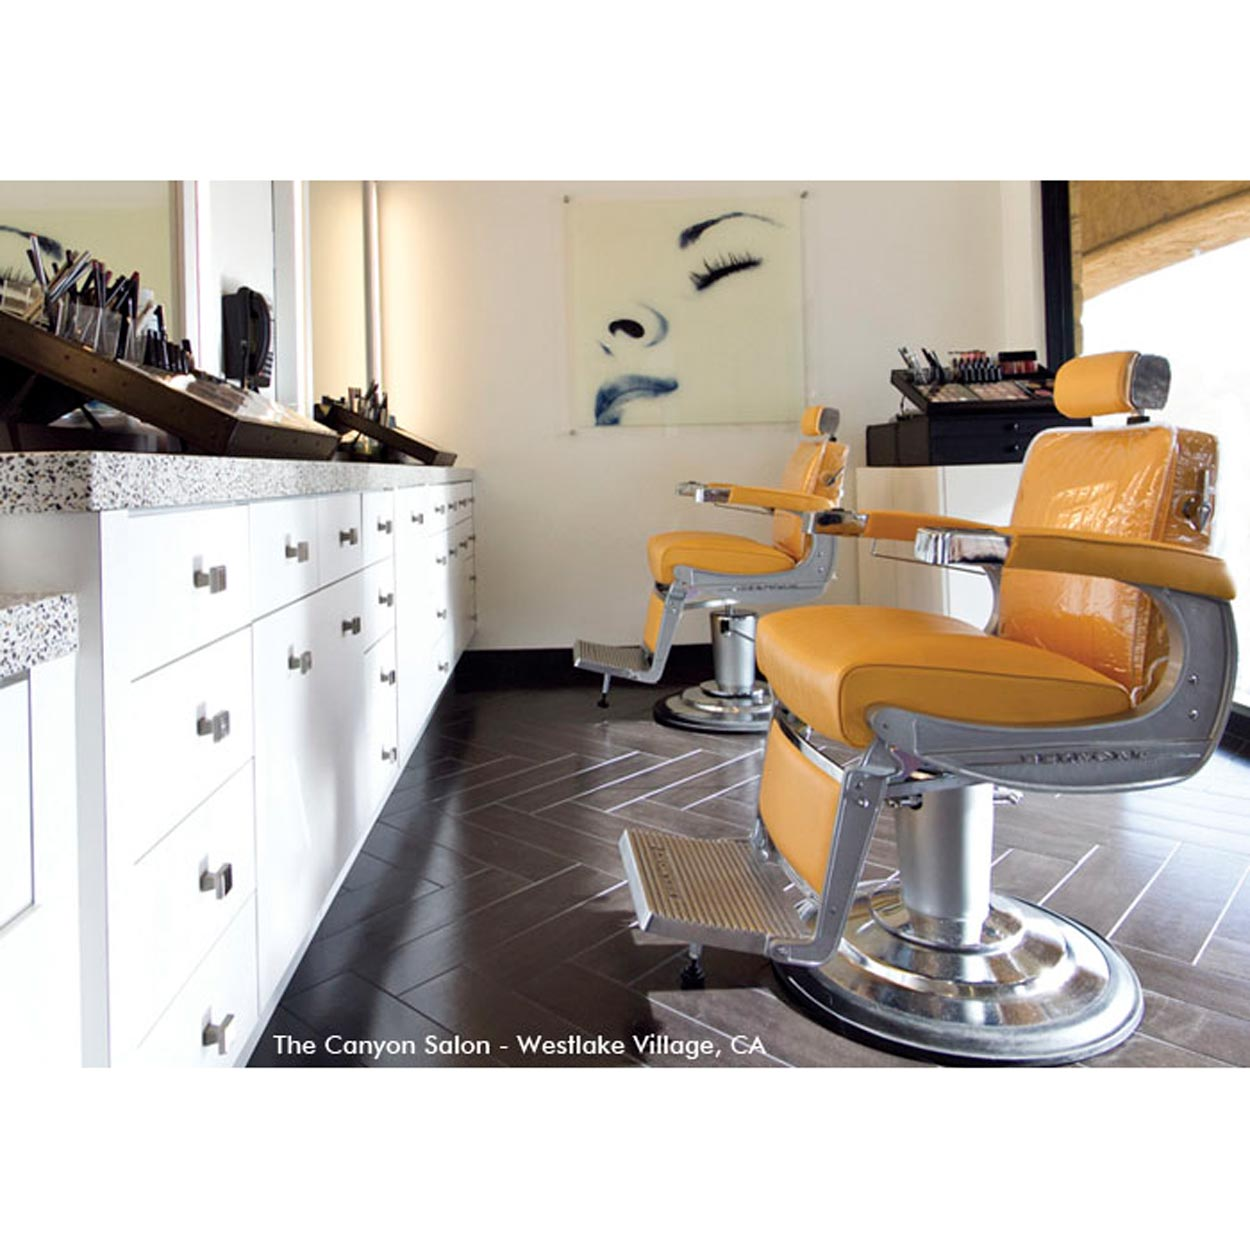 Takara Belmont Elegance Barber Chair with Recliner alternative product image 5